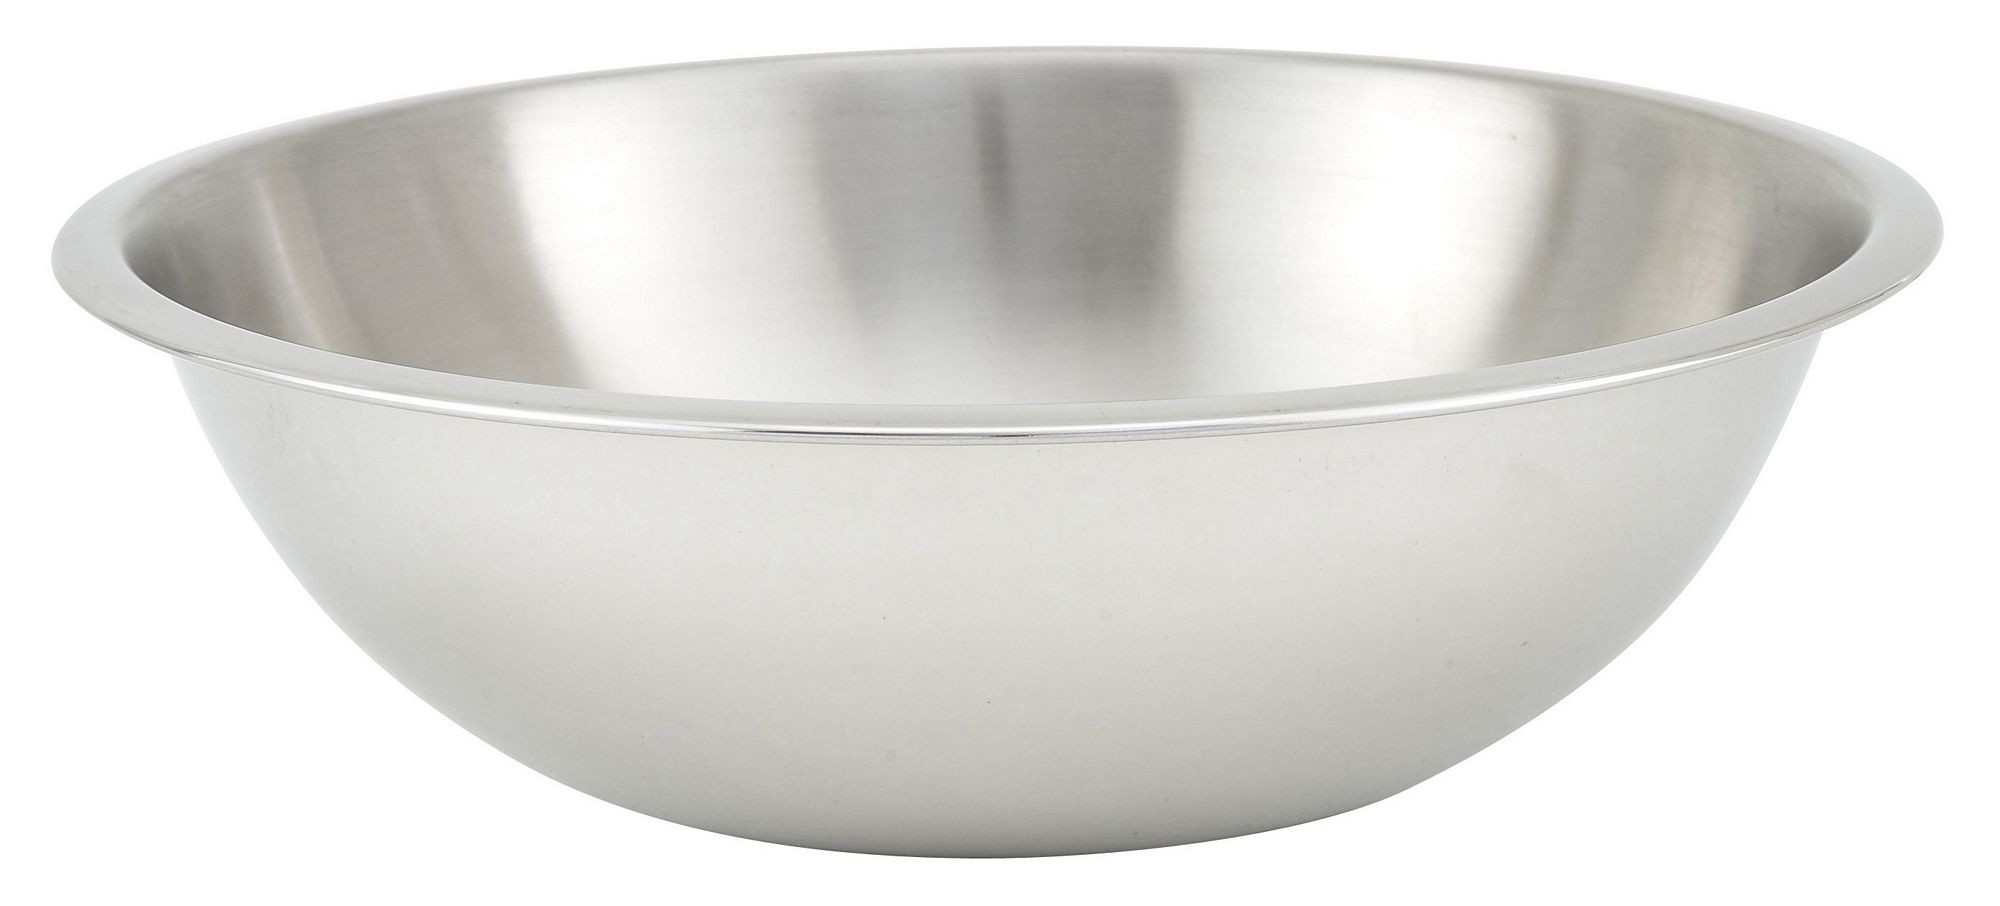 4 Qt Heavy Duty Stainless Mixing Bowl